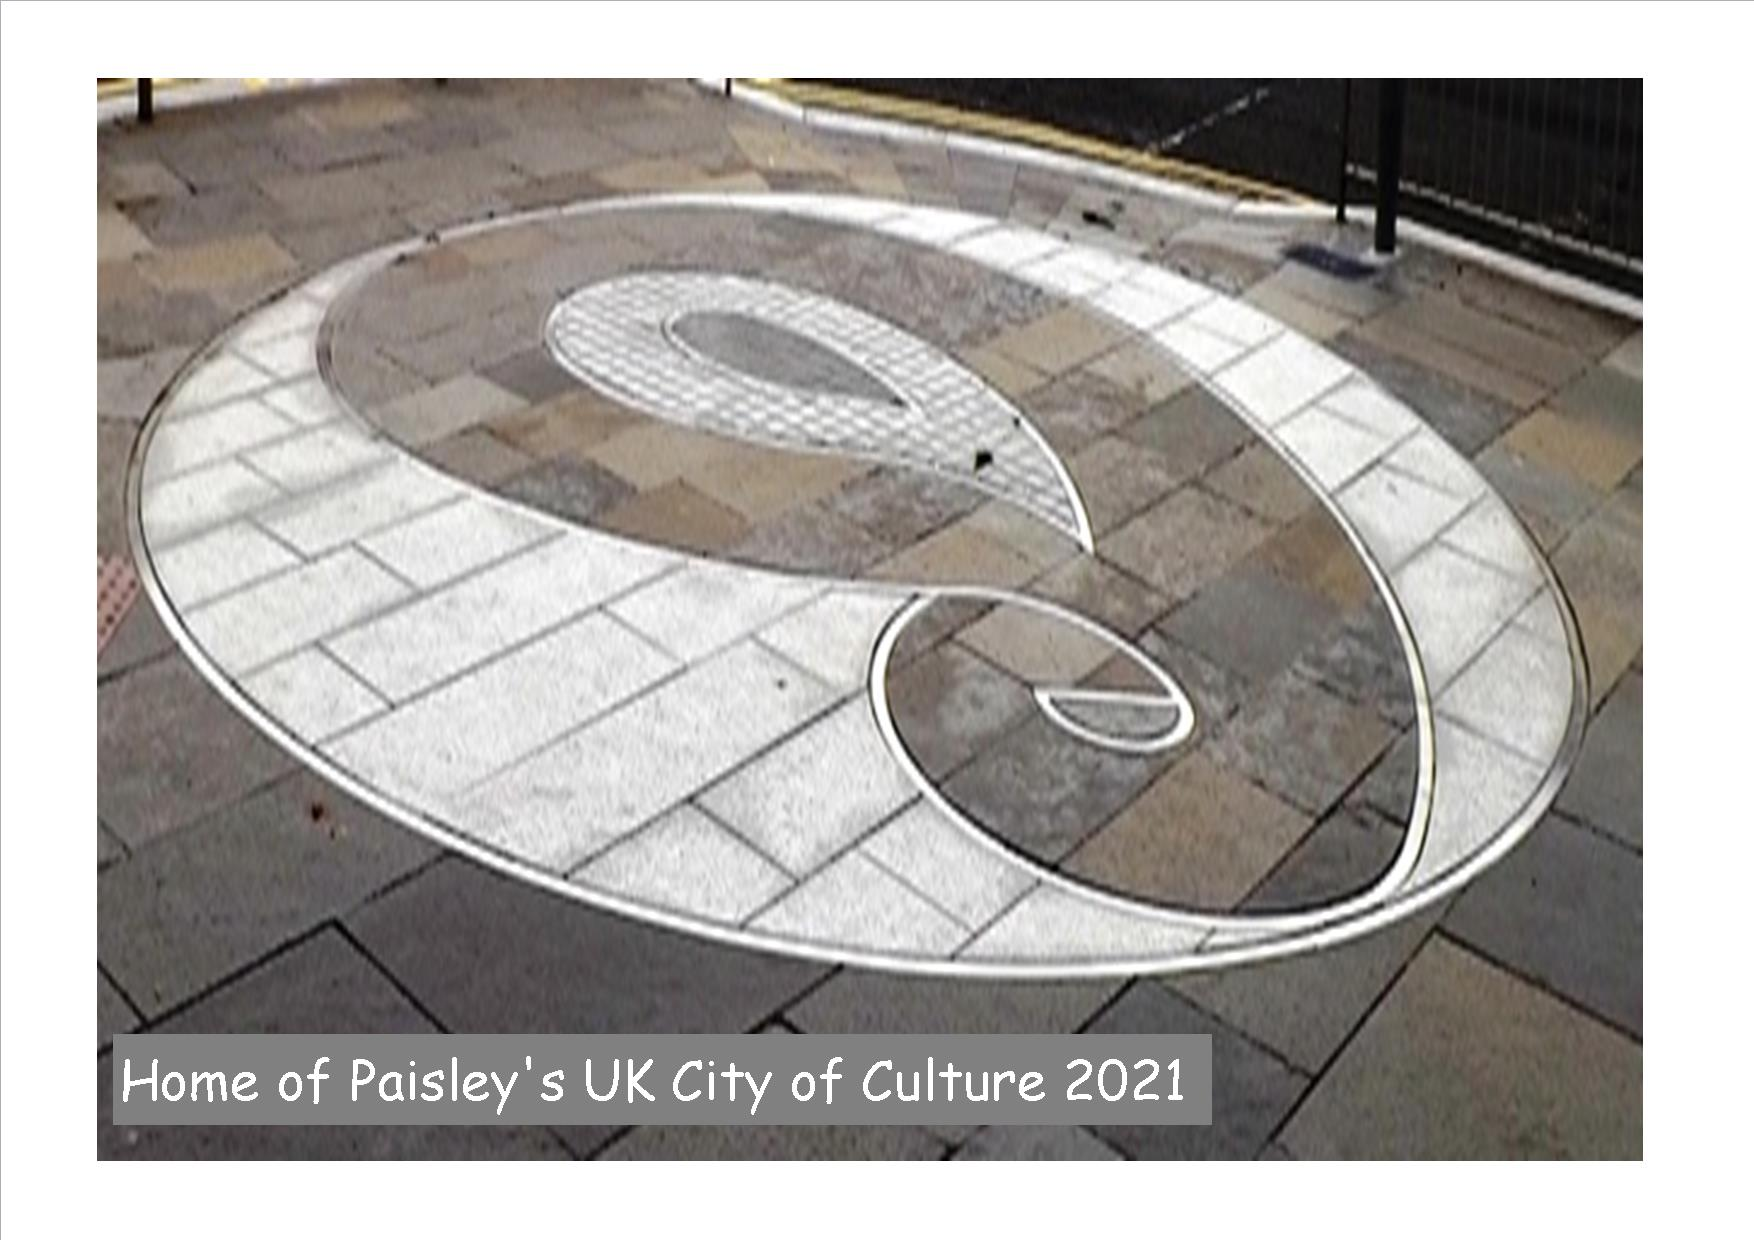 Home of Paisley's UK City of Culture 2021